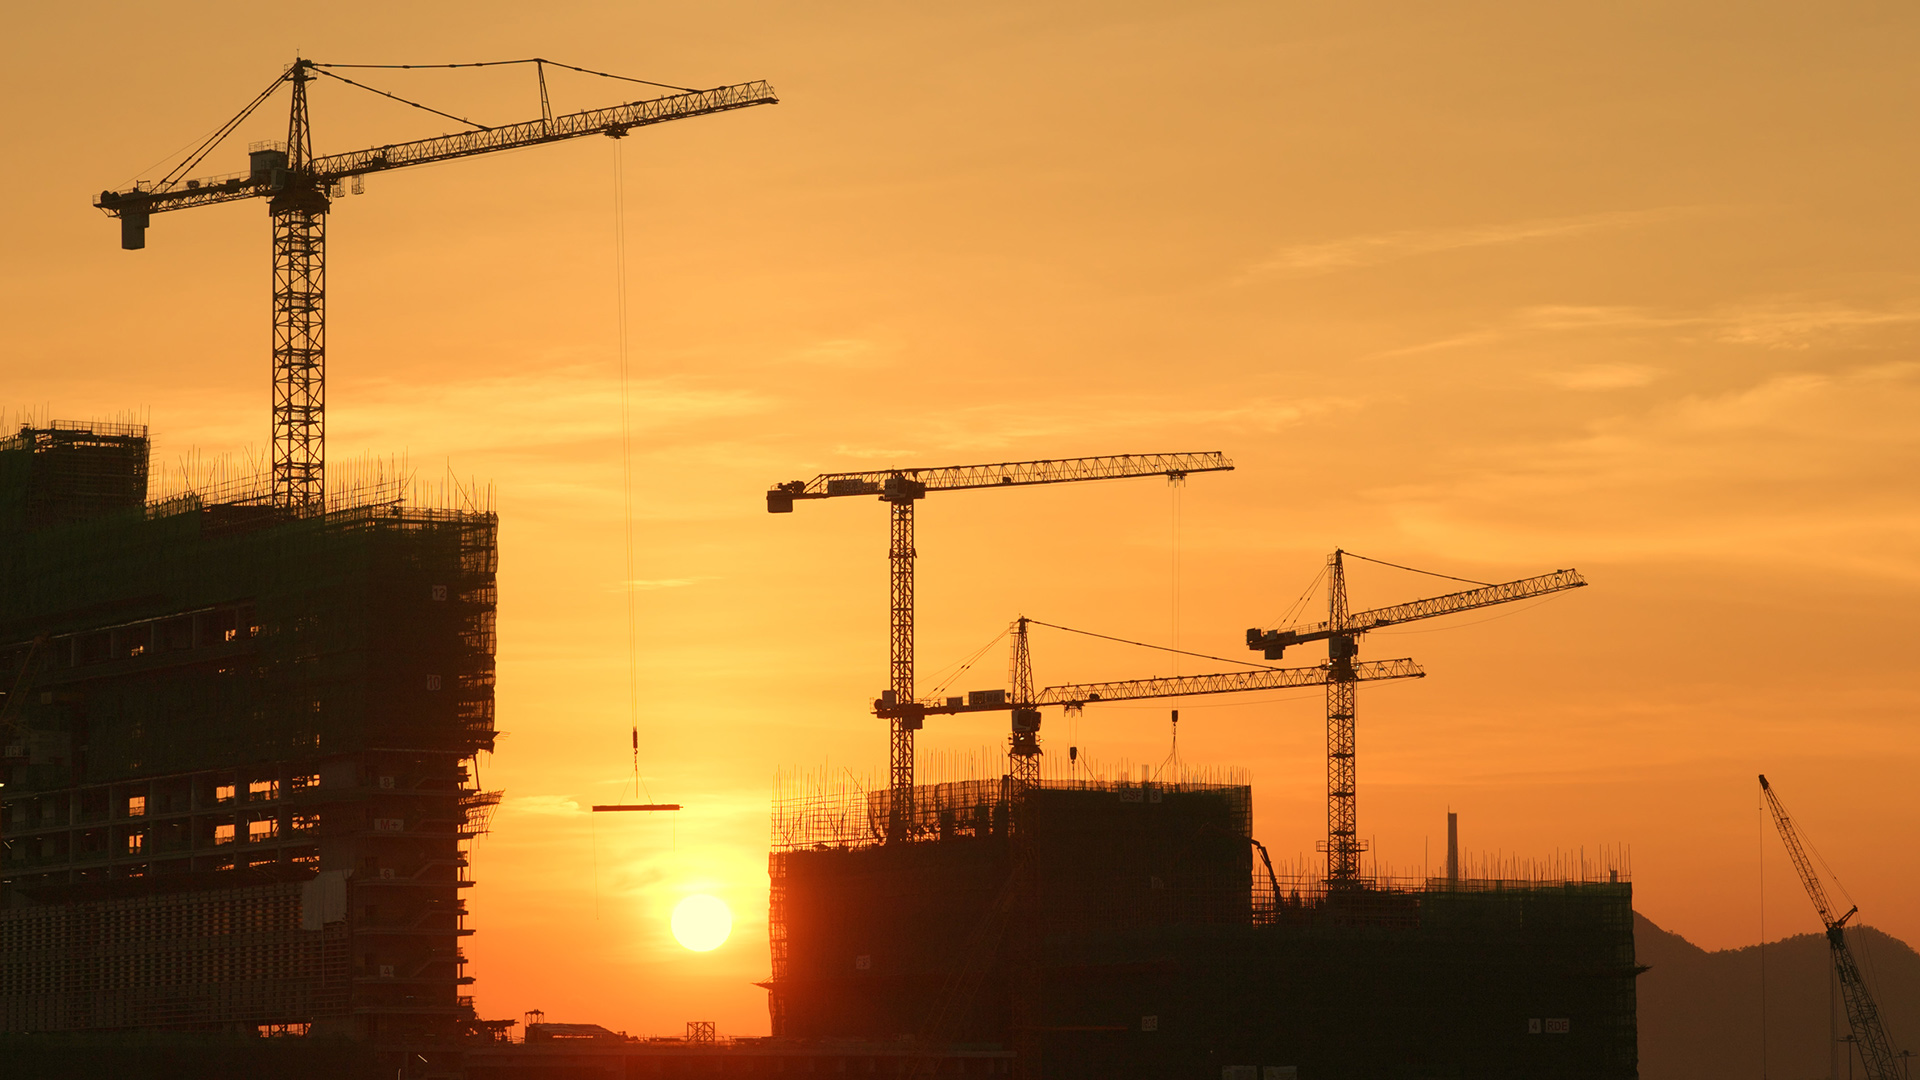 Construction site at dusk